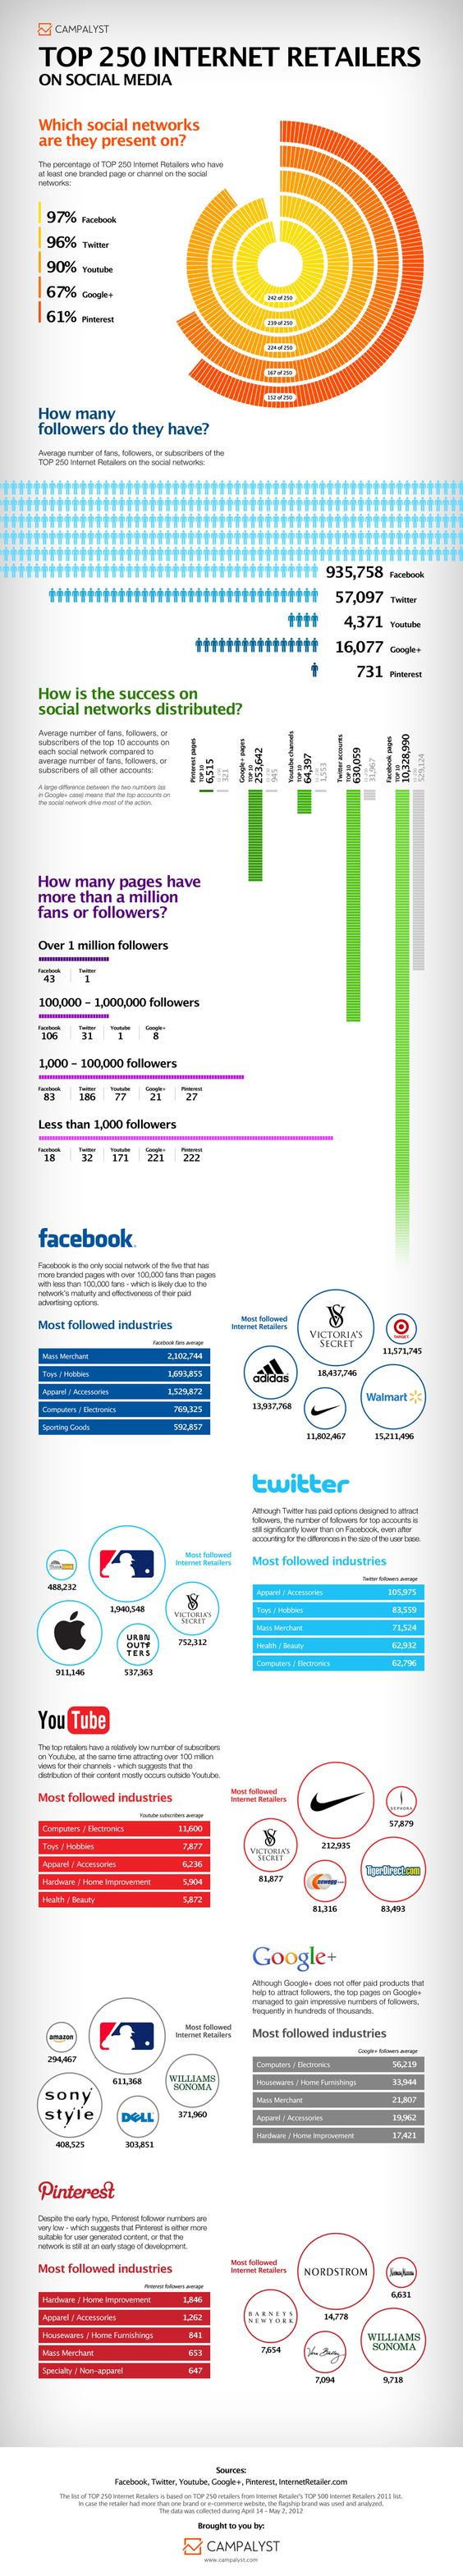 Brands In Social Media: How Popular You Need To Be